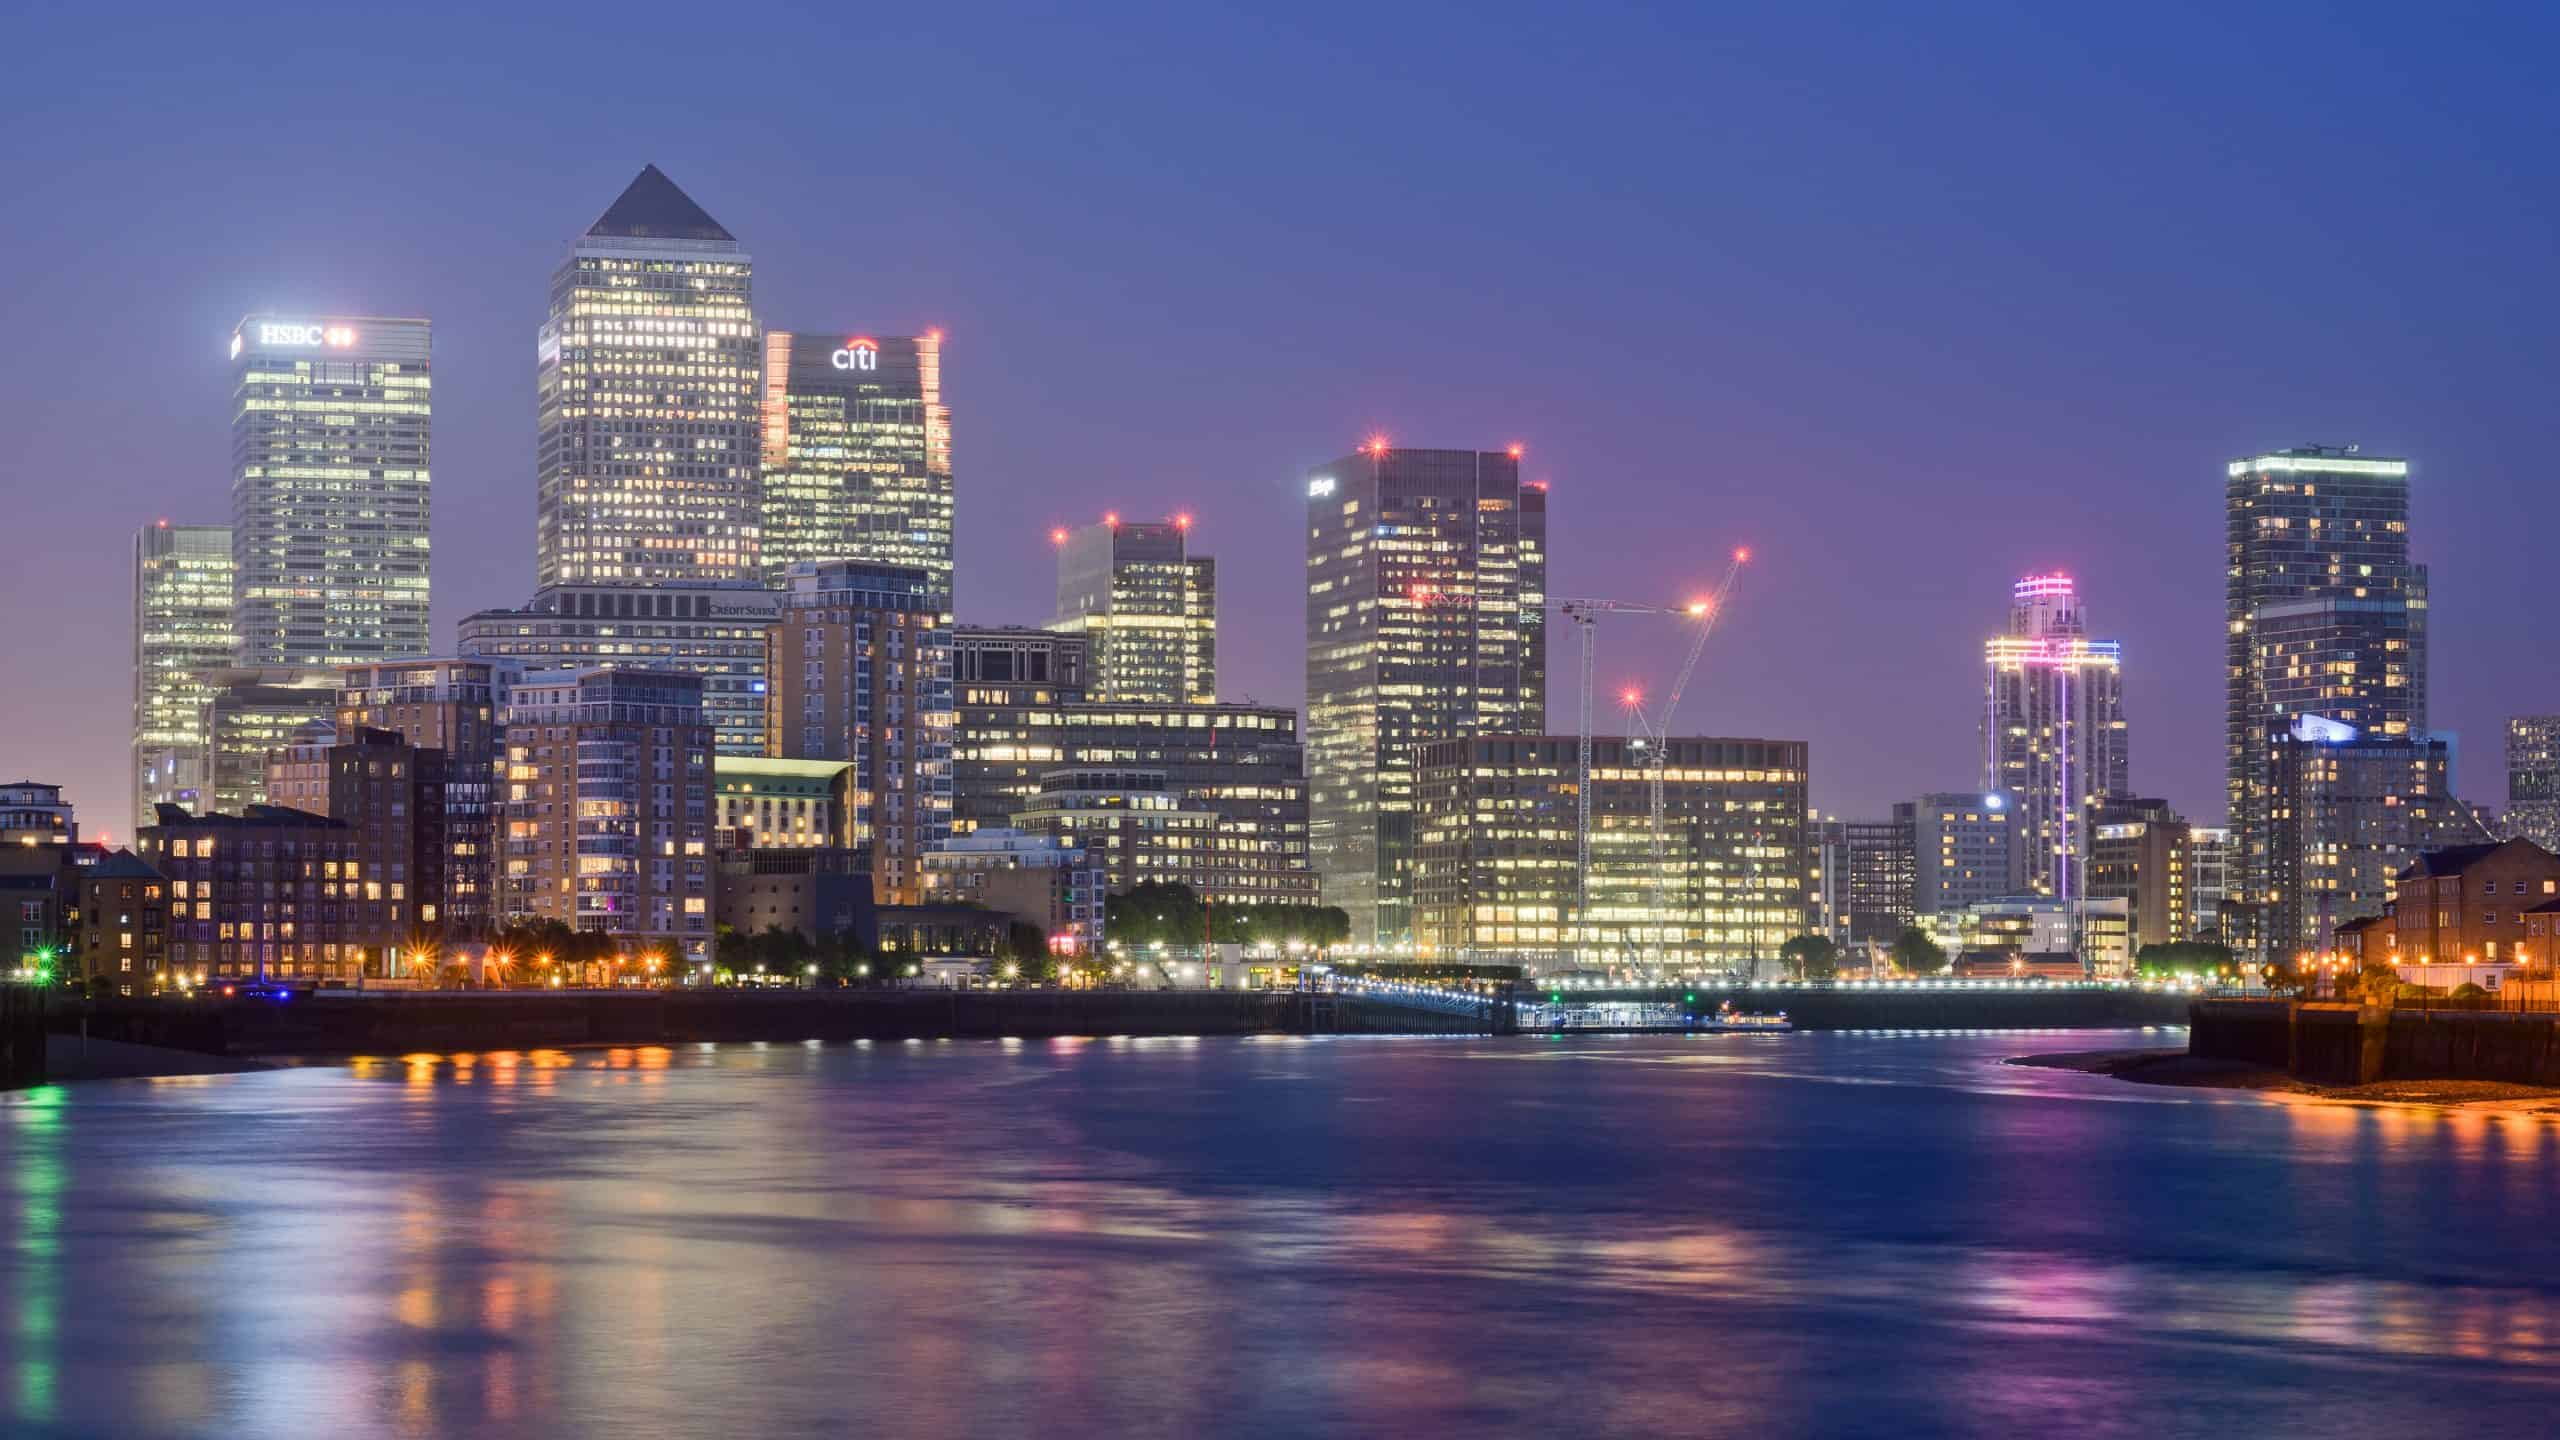 Image showing canary wharf by night, accountants